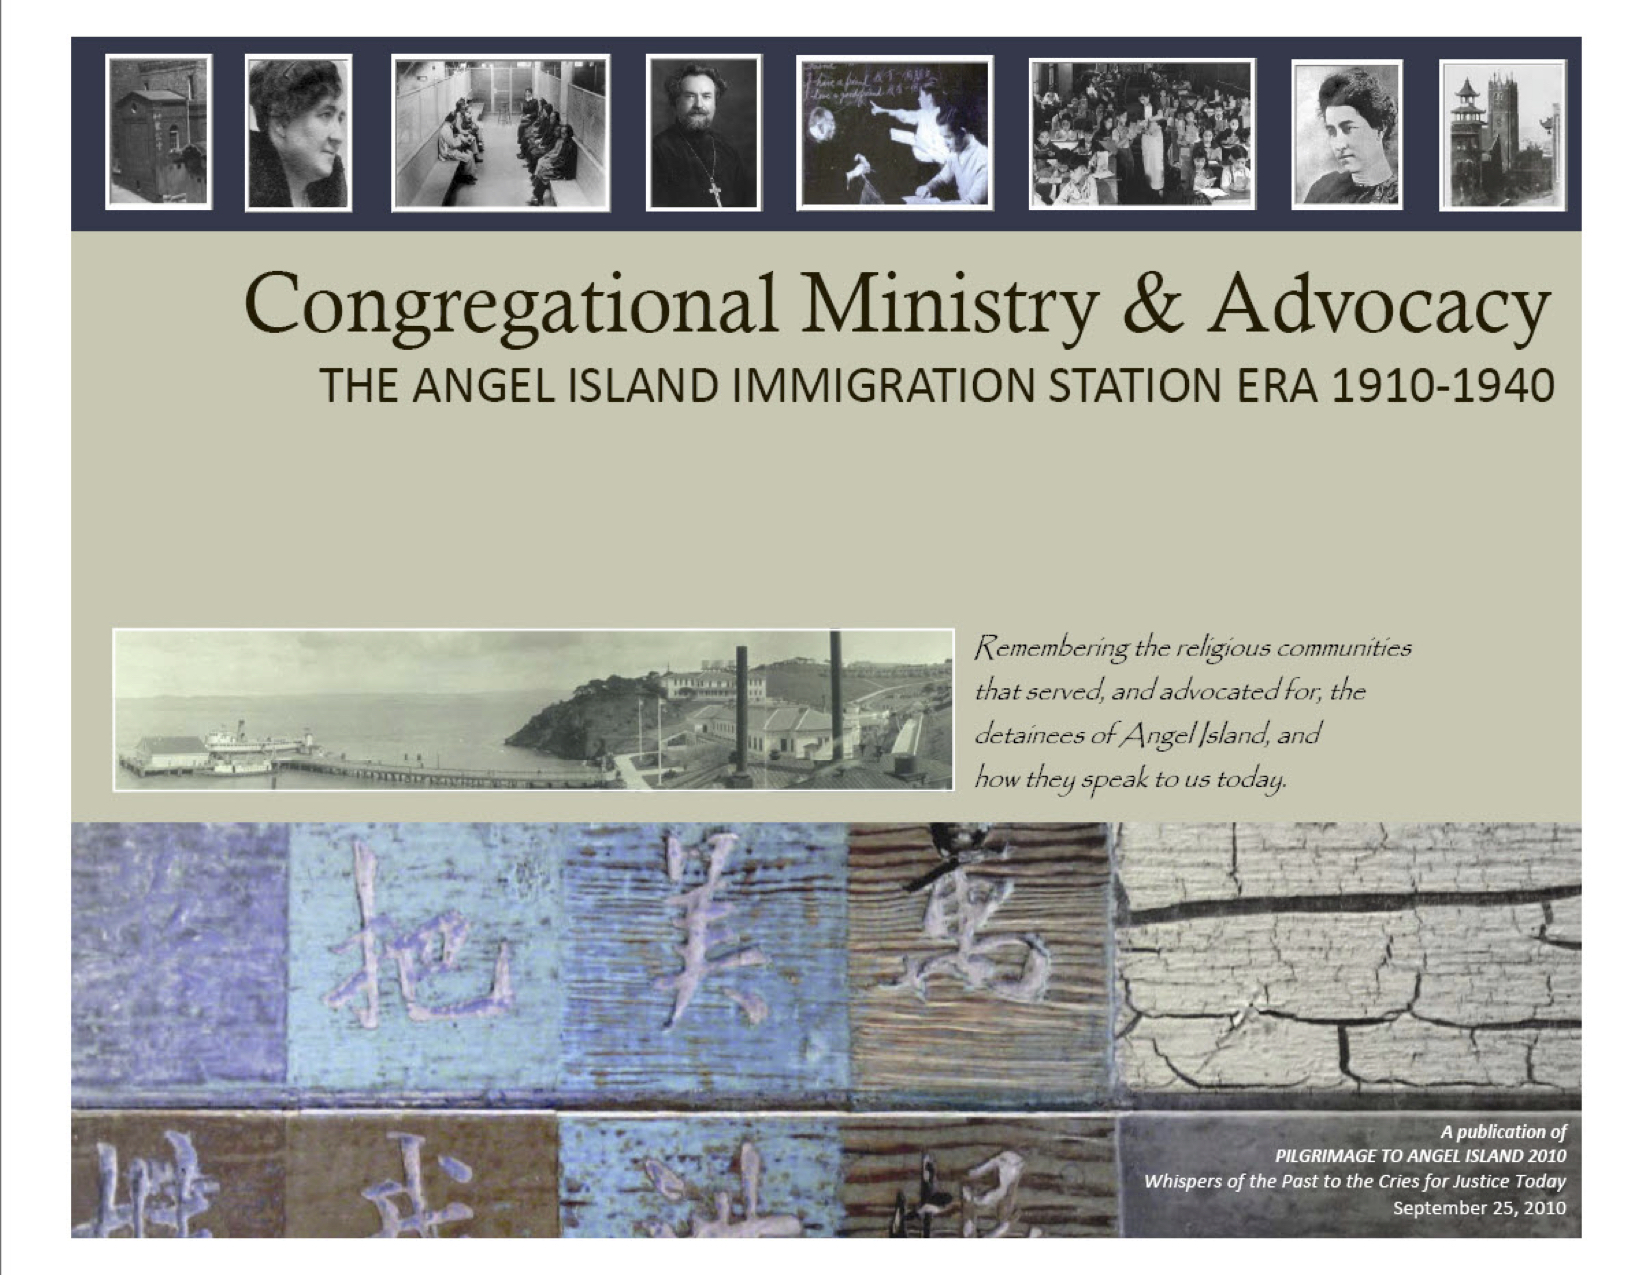 AngelIsland-Mission works